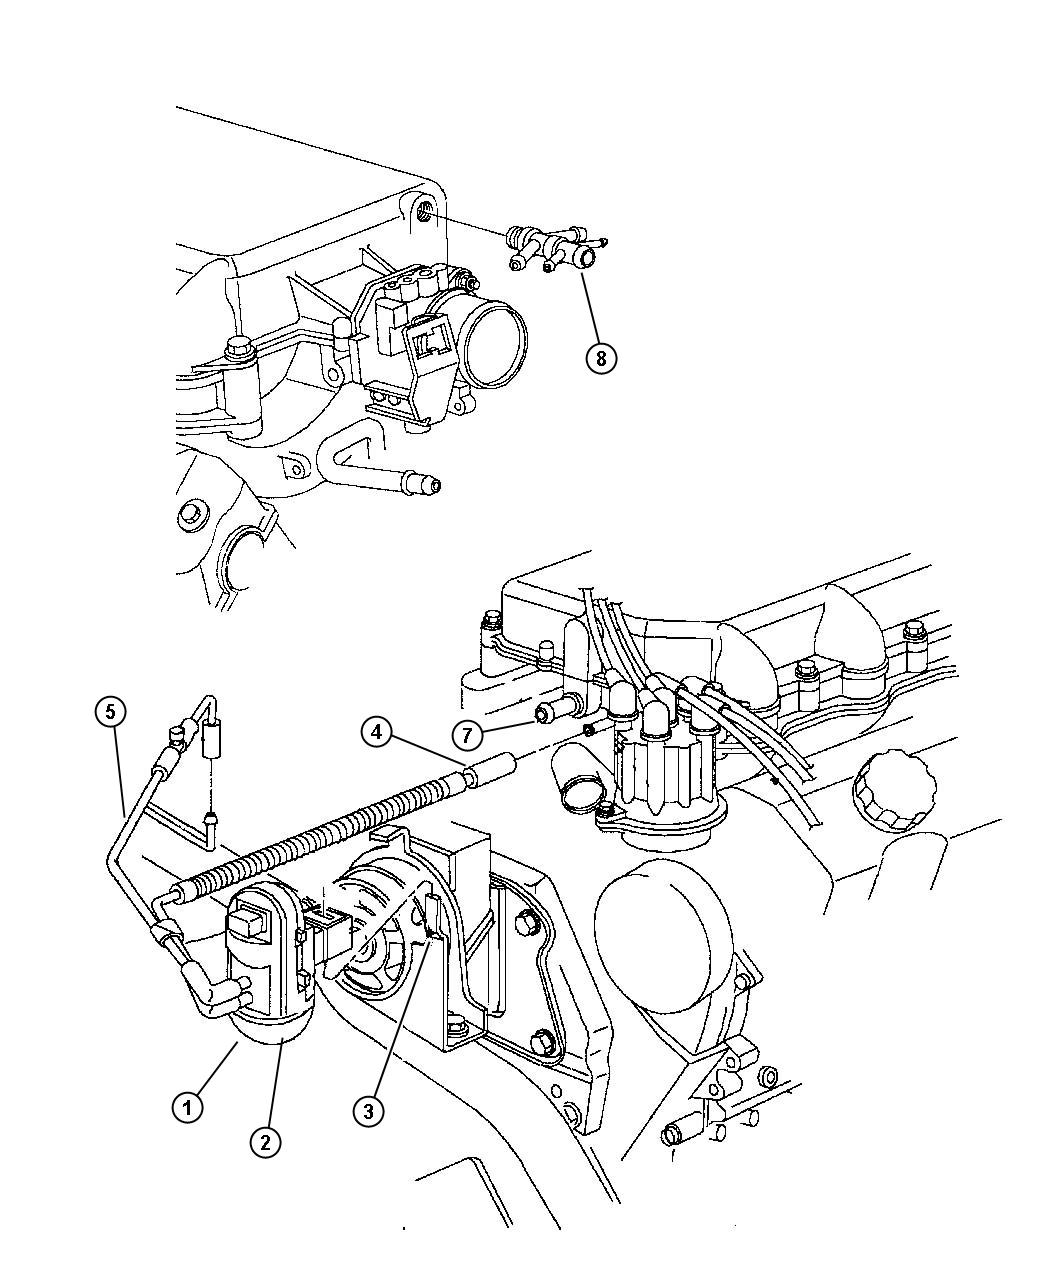 1999 dodge grand caravan 3 0l engine diagram dodge auto wiring diagram